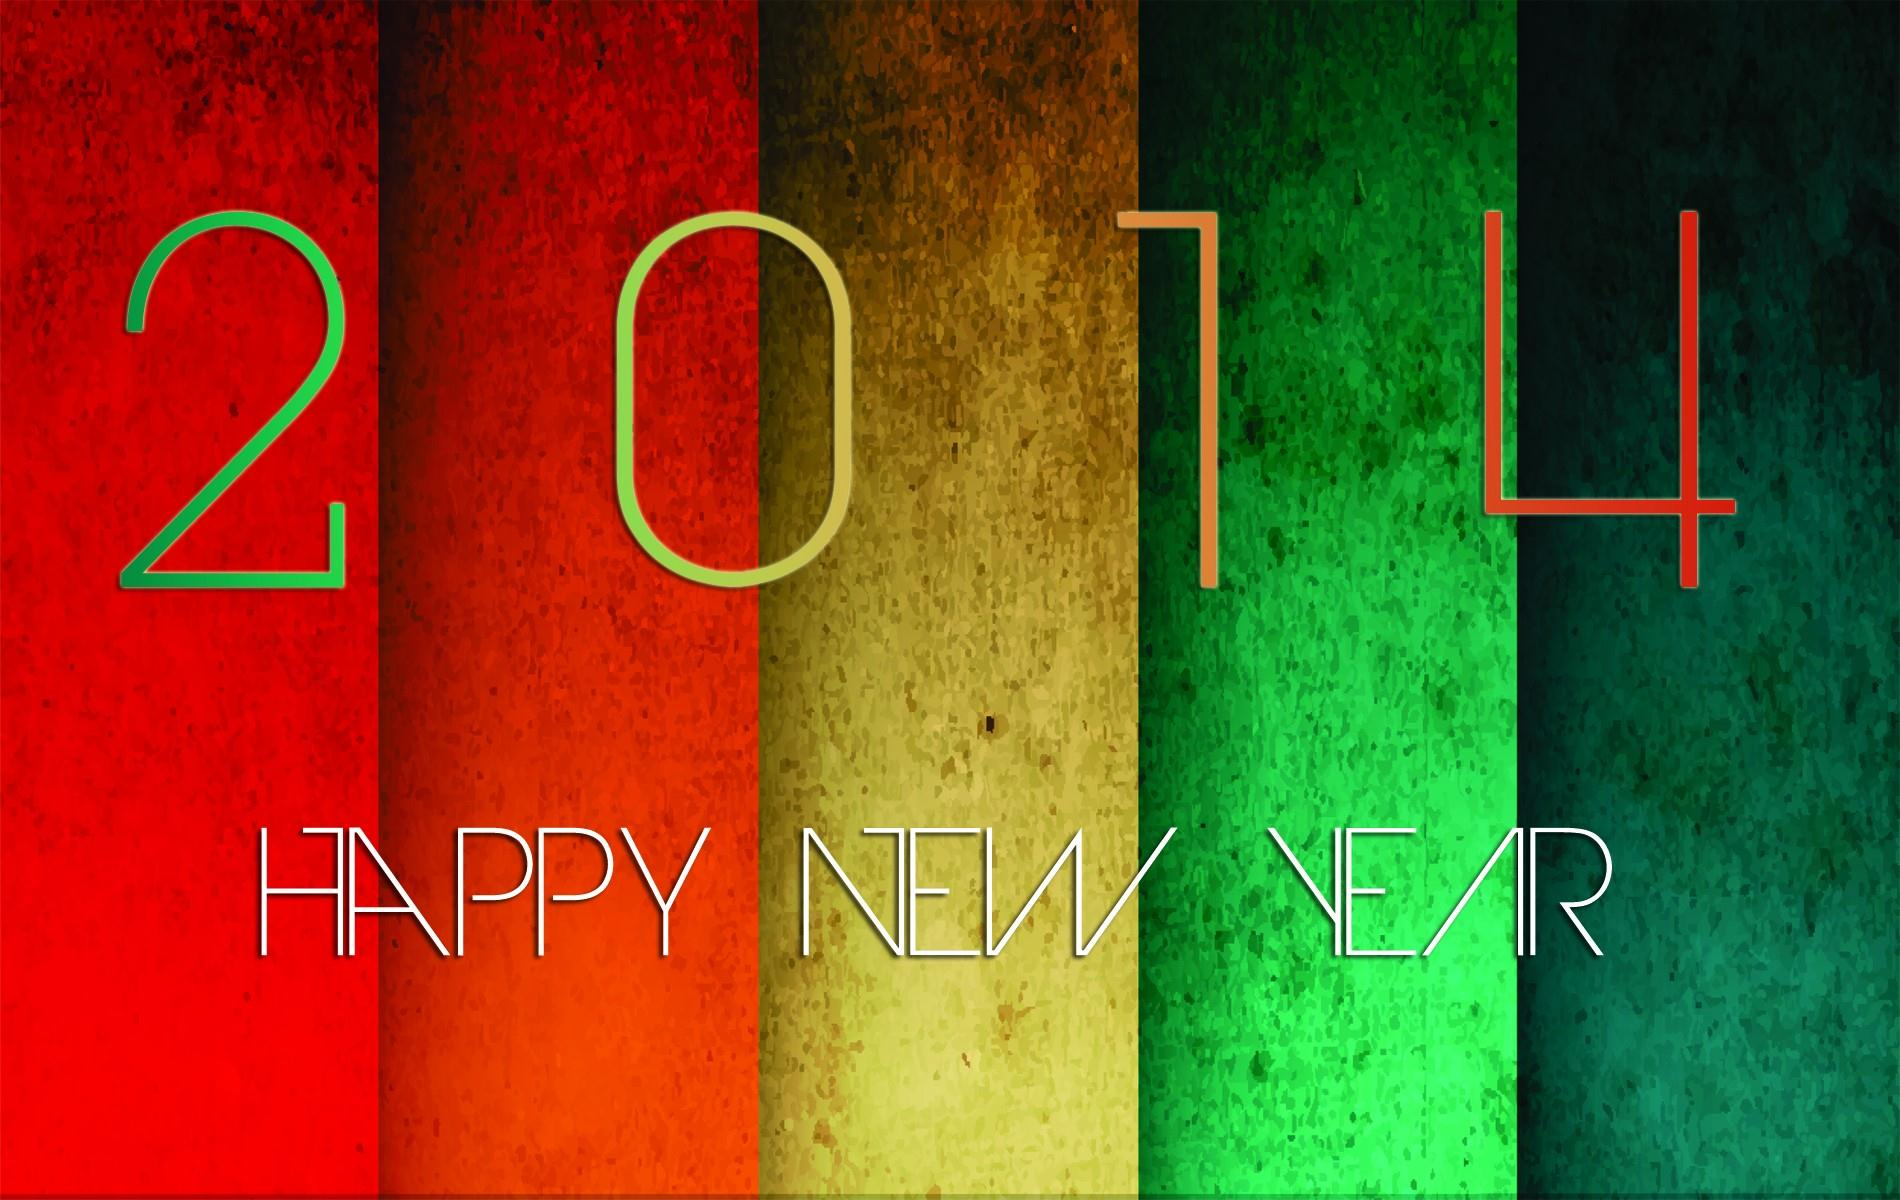 Happy New Year 2014 Wallpaper Download HD 6976463 1900x1200